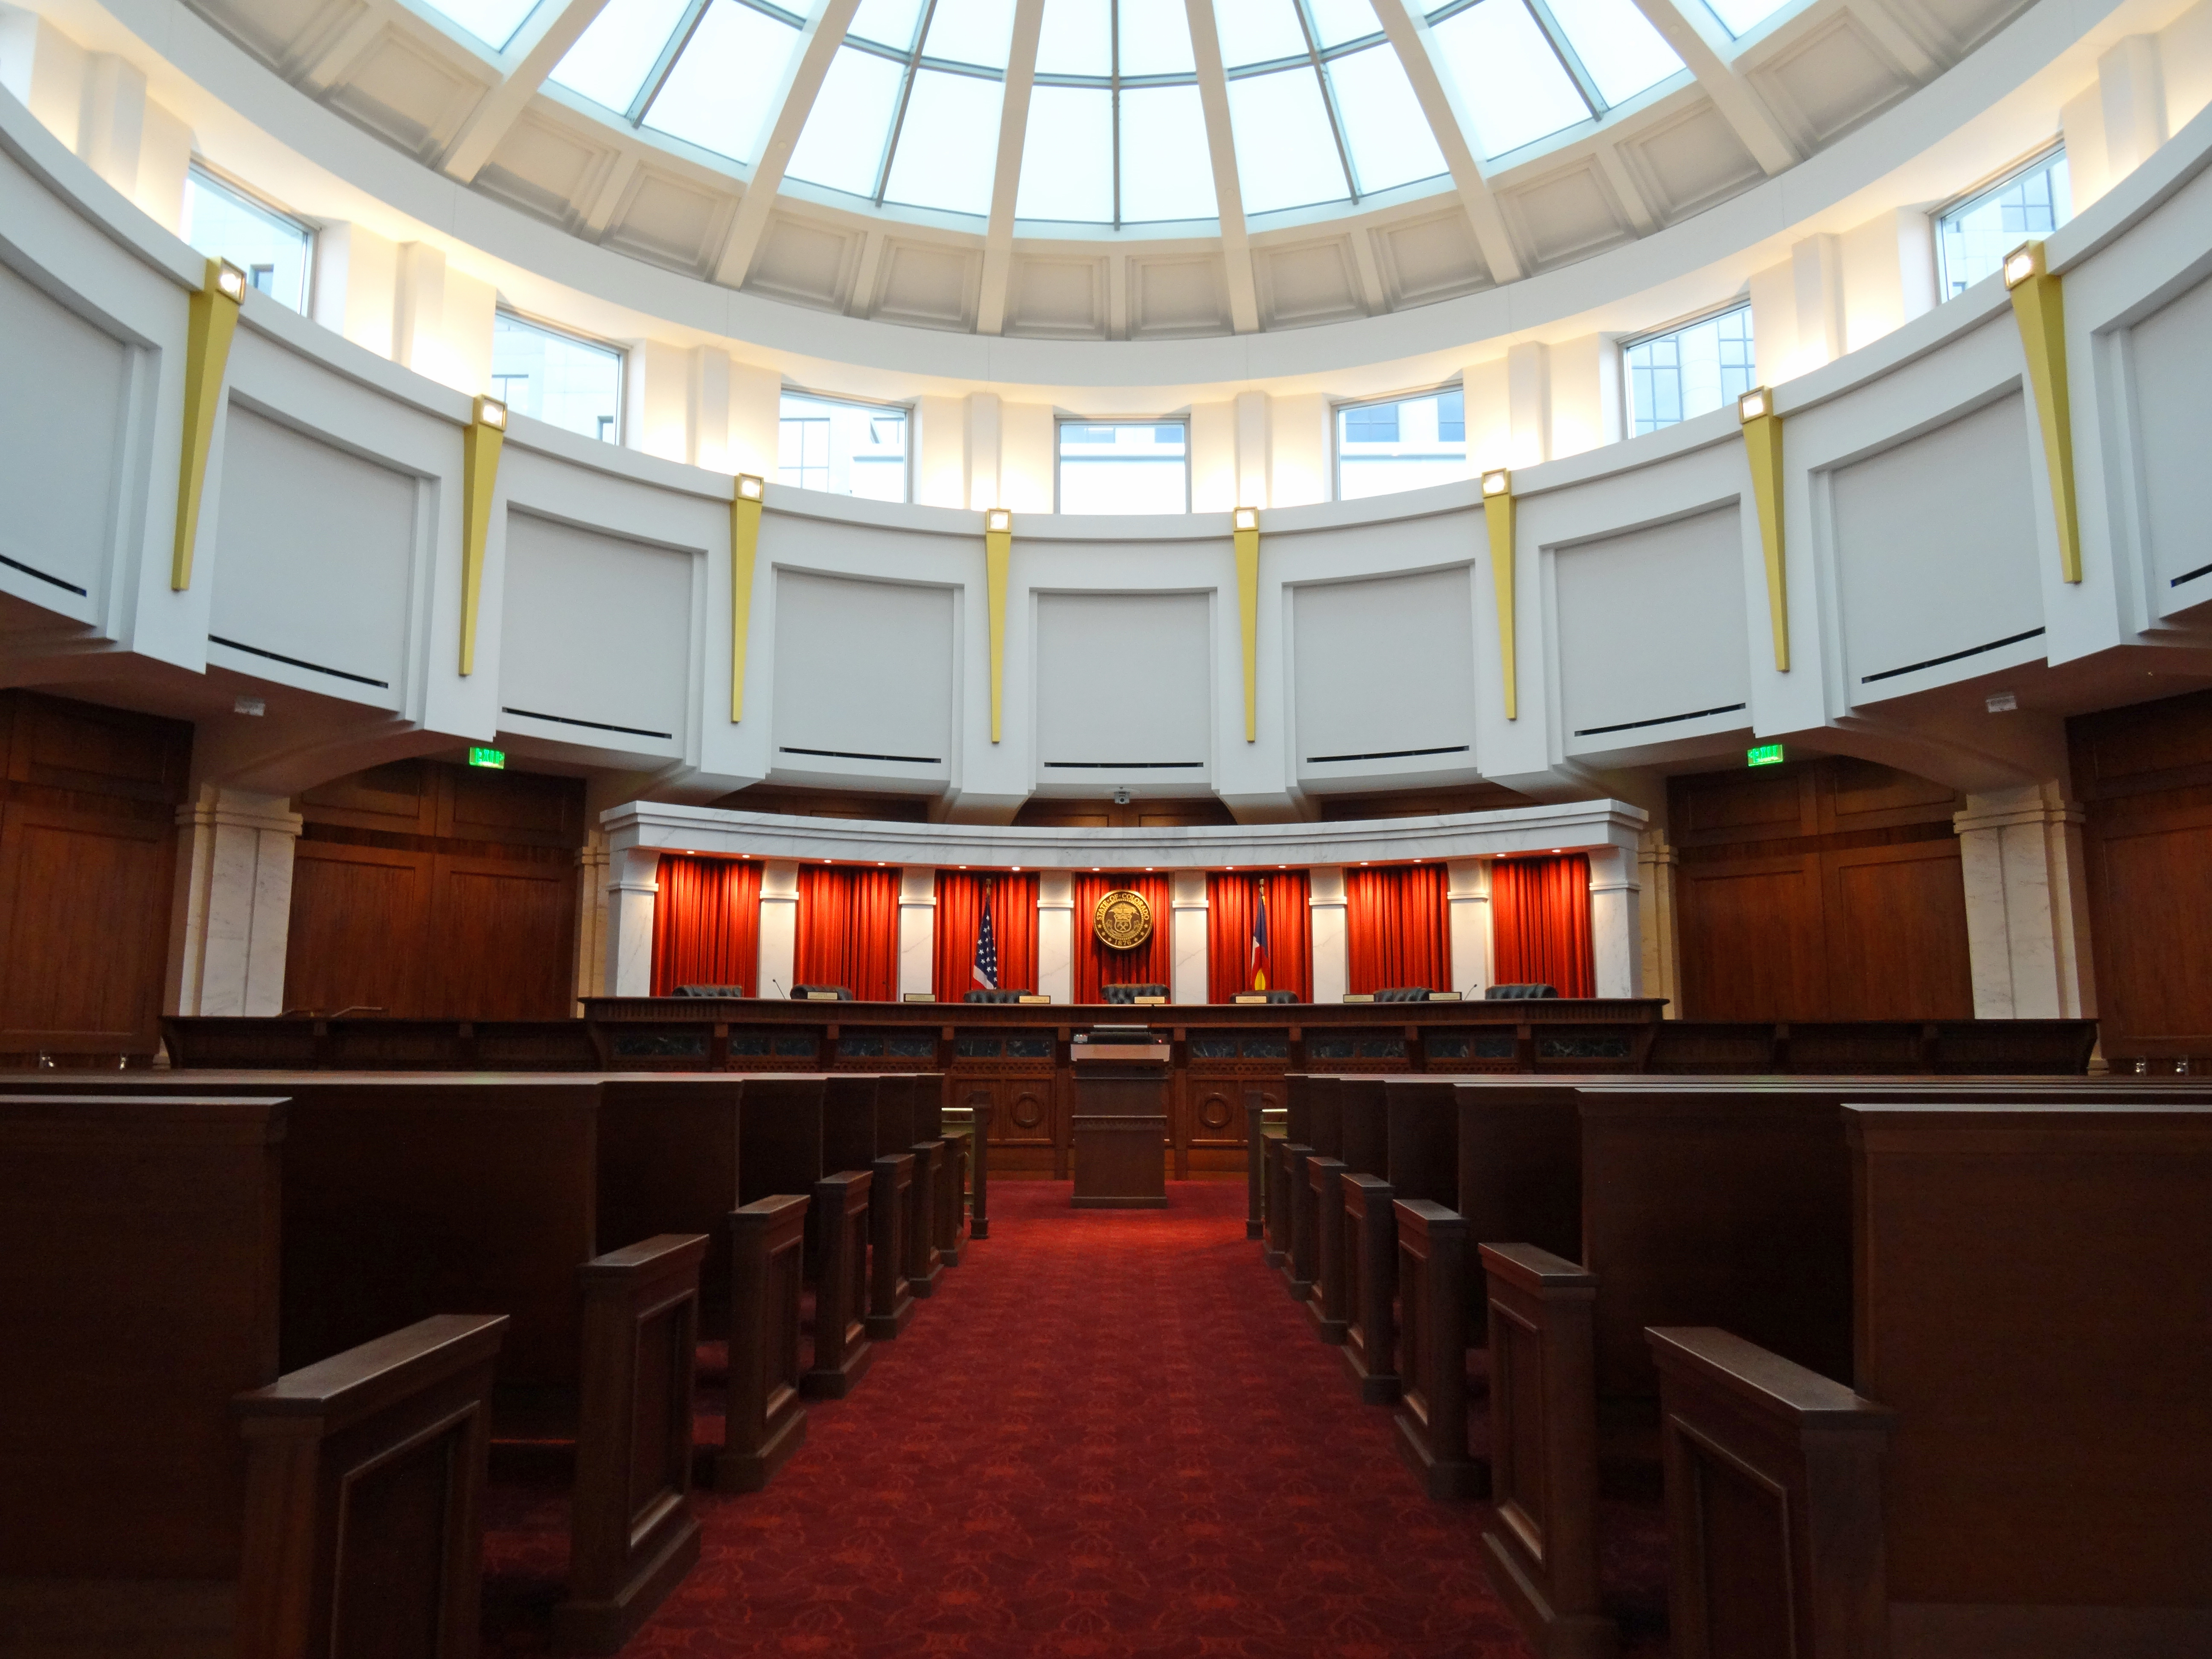 File:Colorado Supreme Court courtroom.JPG - Wikimedia Commons